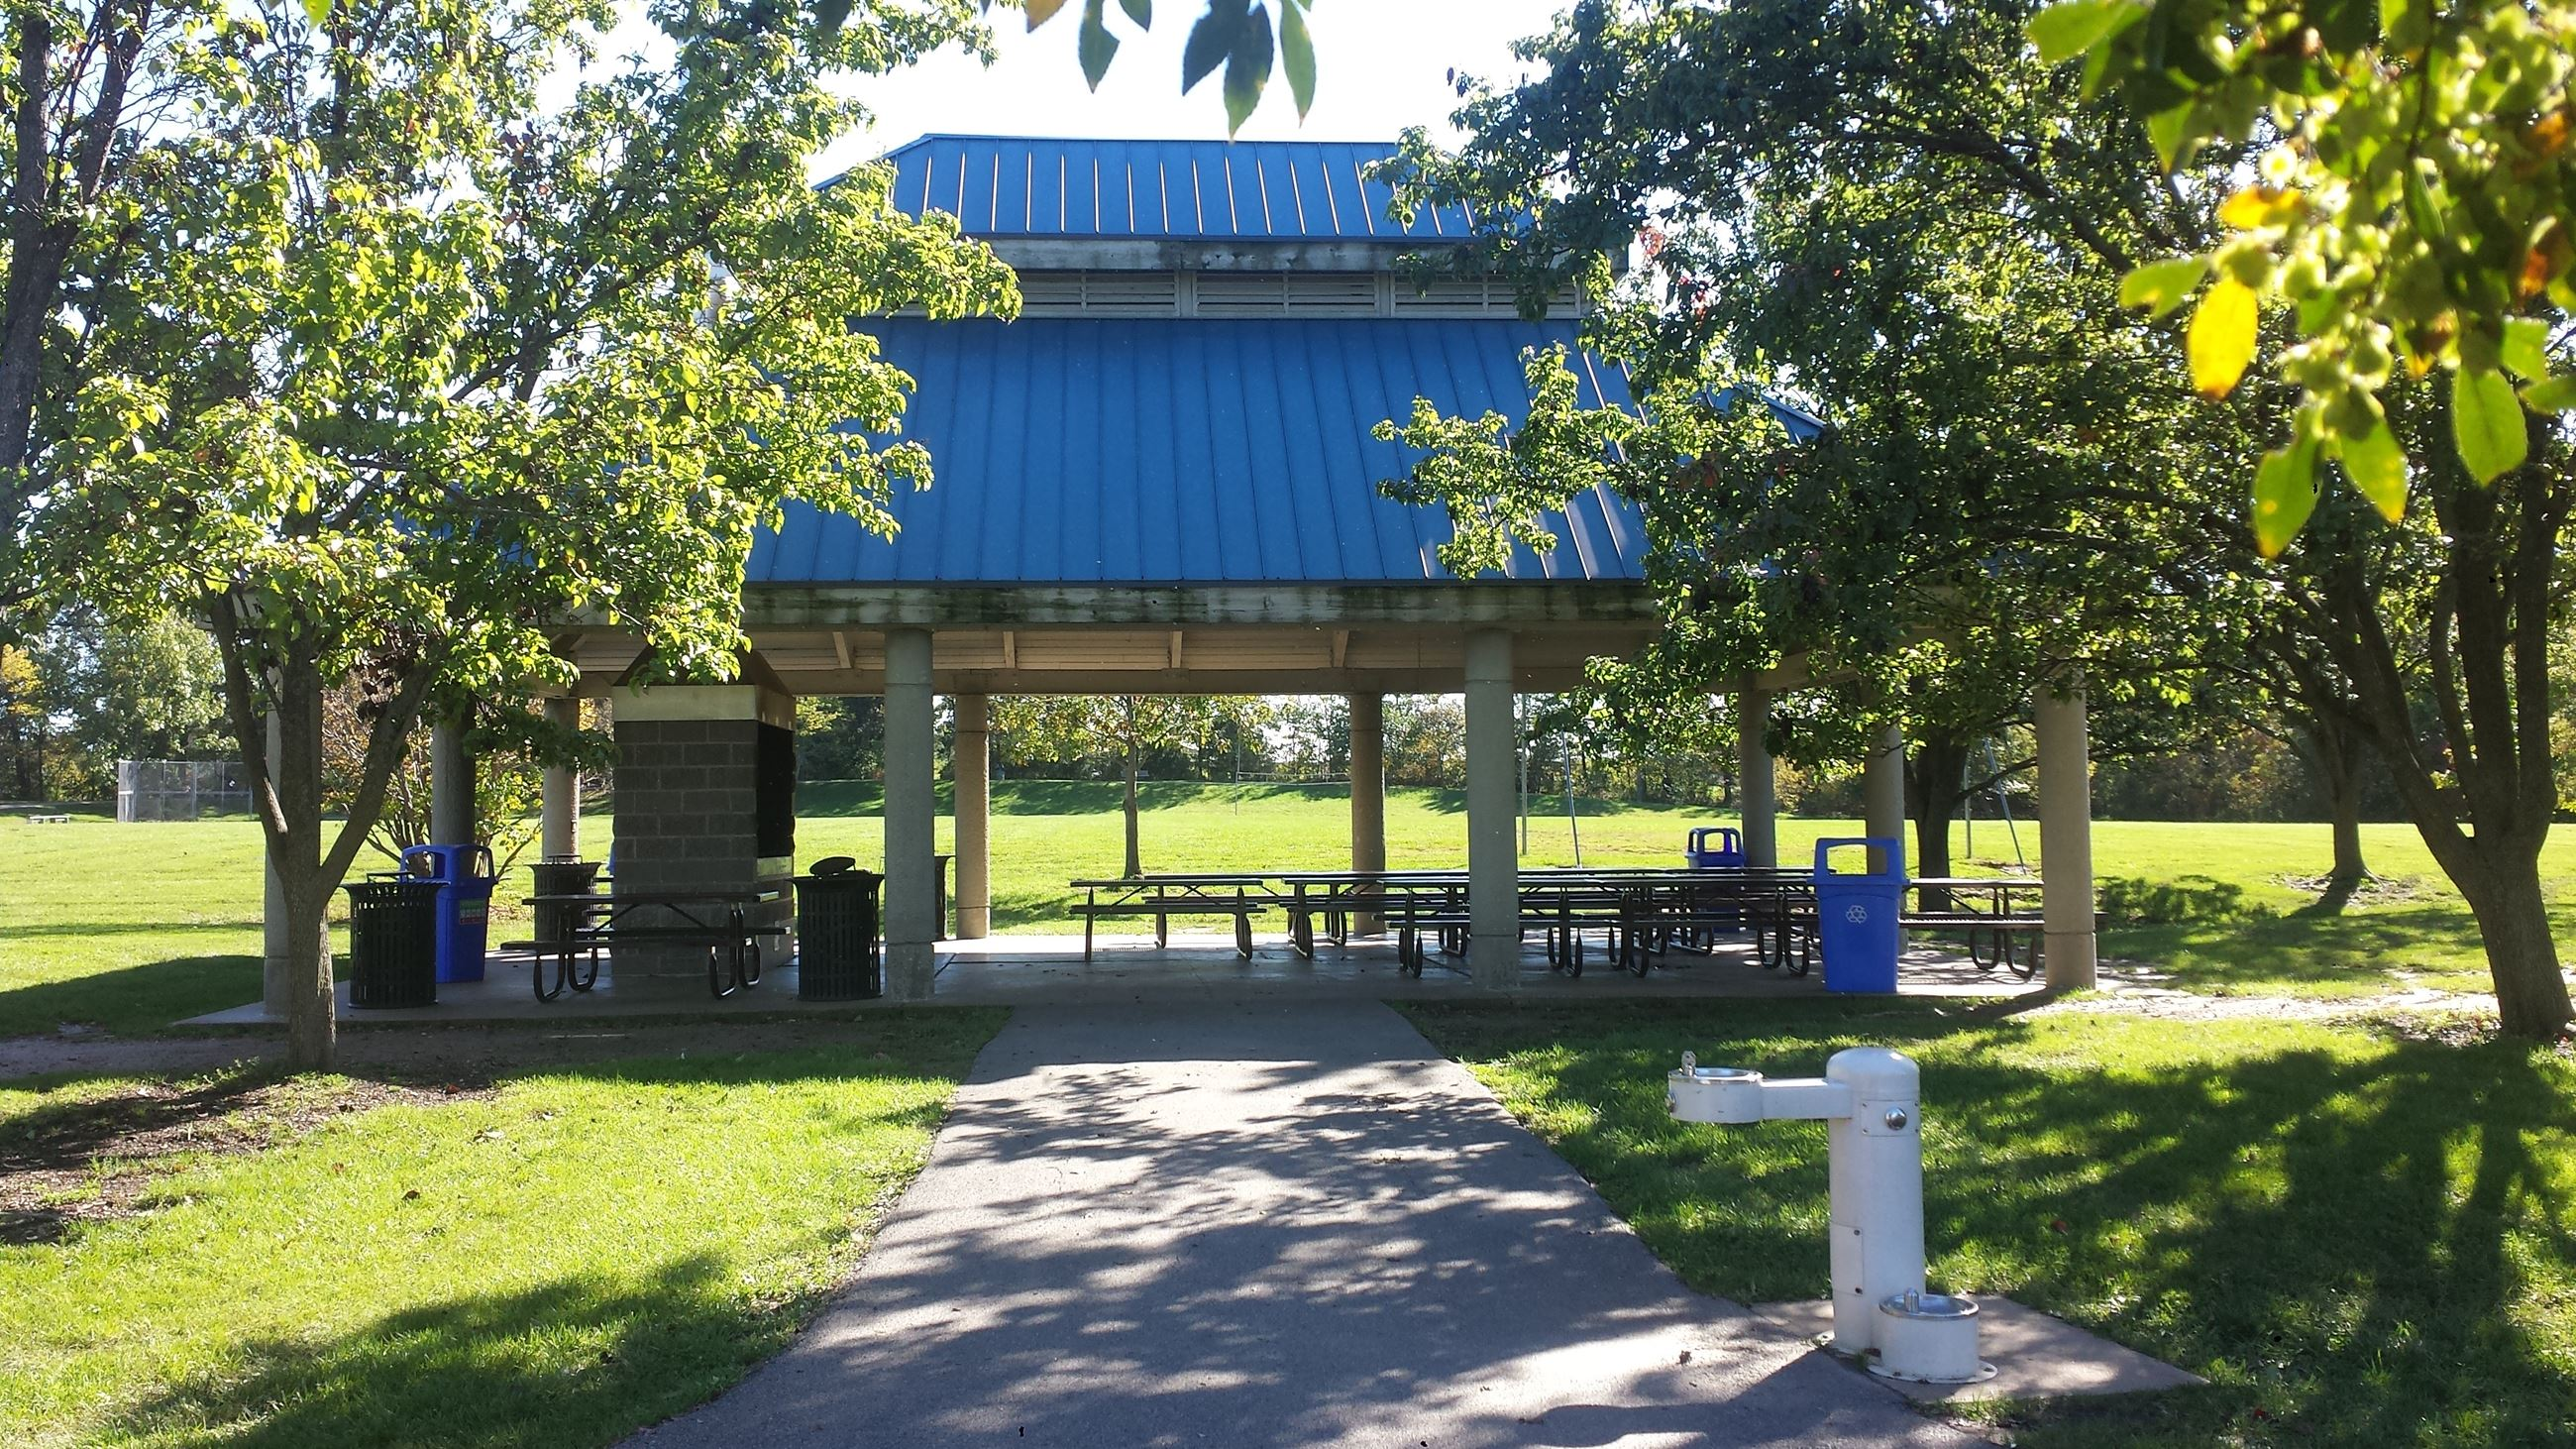 Boulevard Park Pavilion Before with Blue Roof